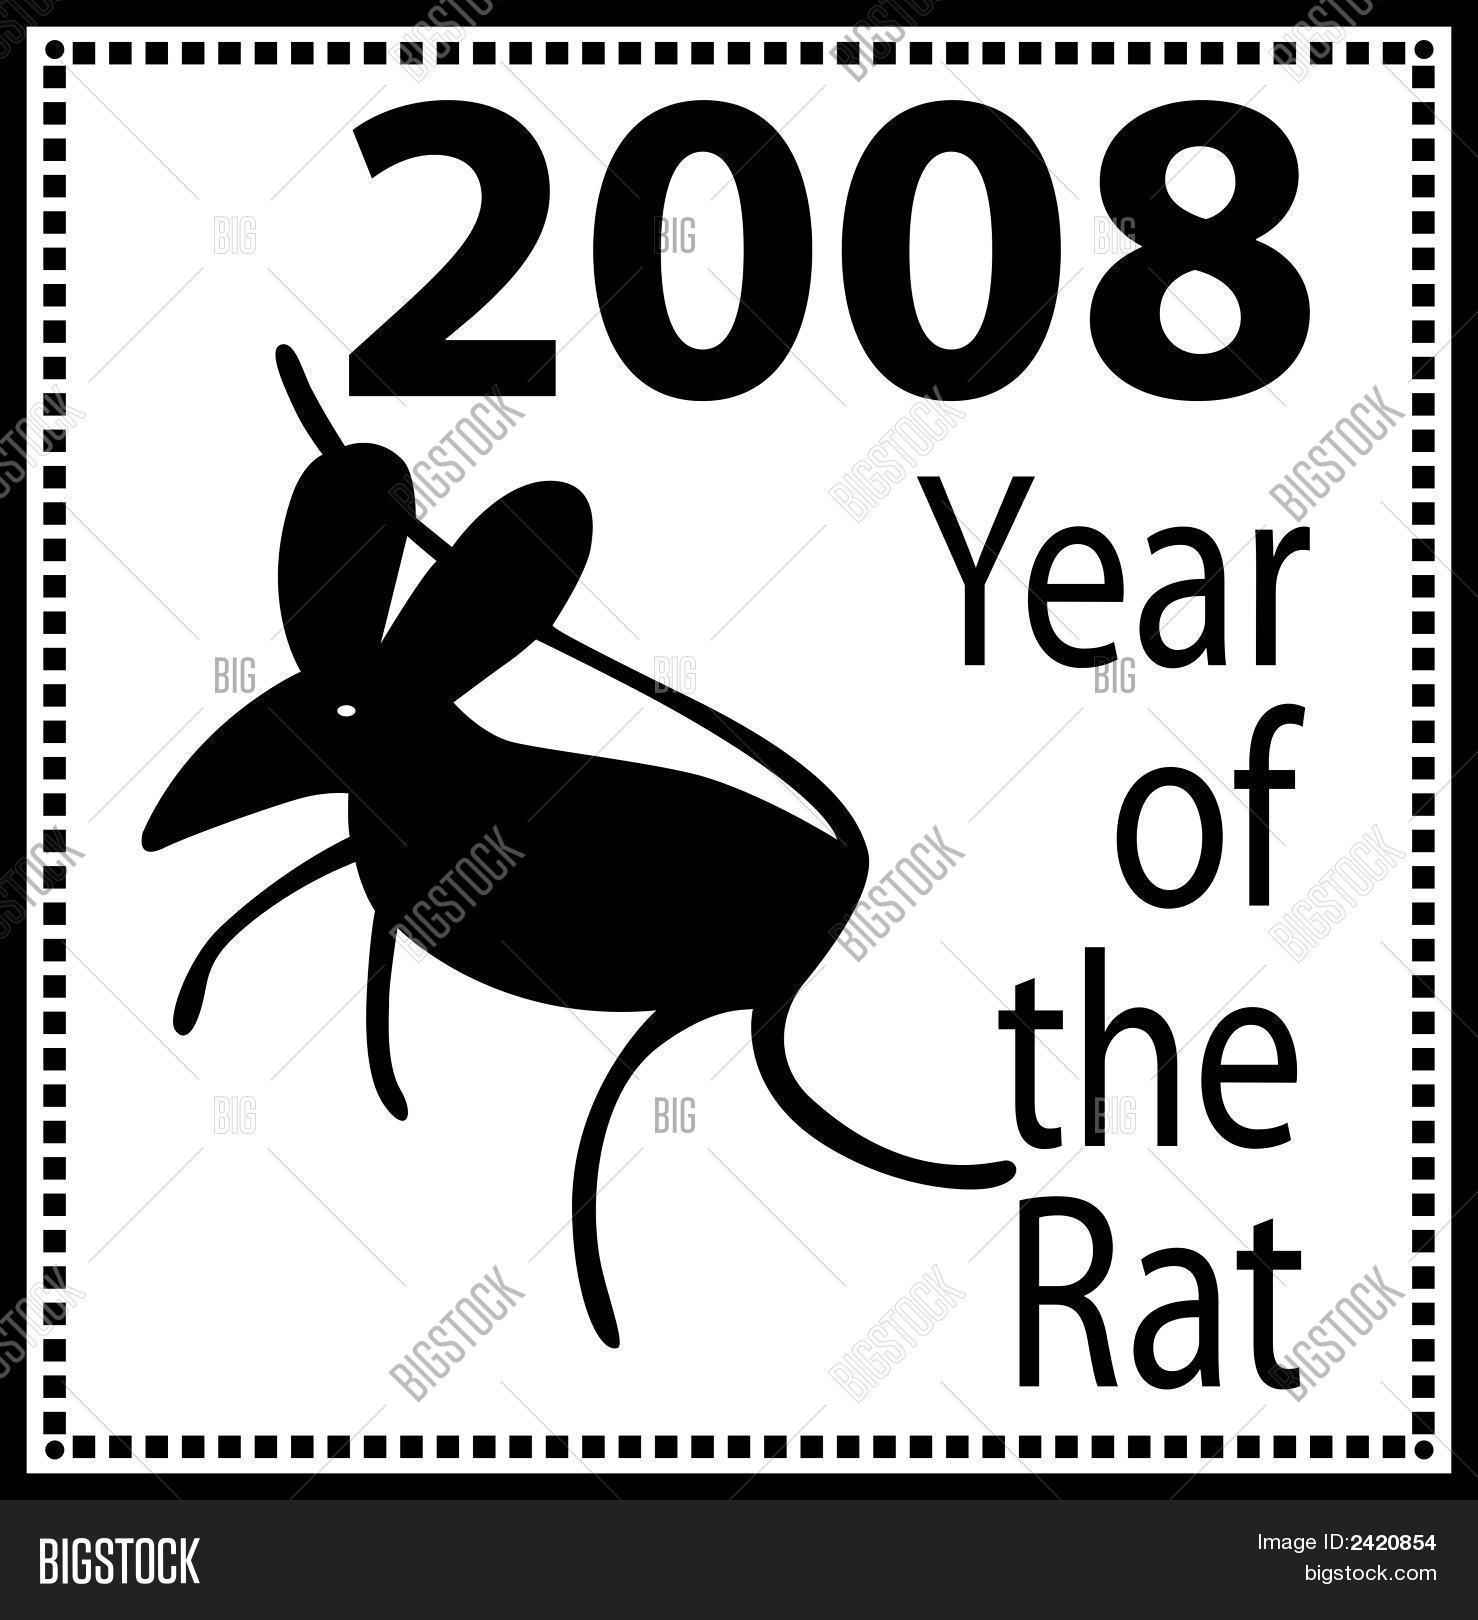 New Year 2008 Rat Eps Vector & Photo (Free Trial) | Bigstock